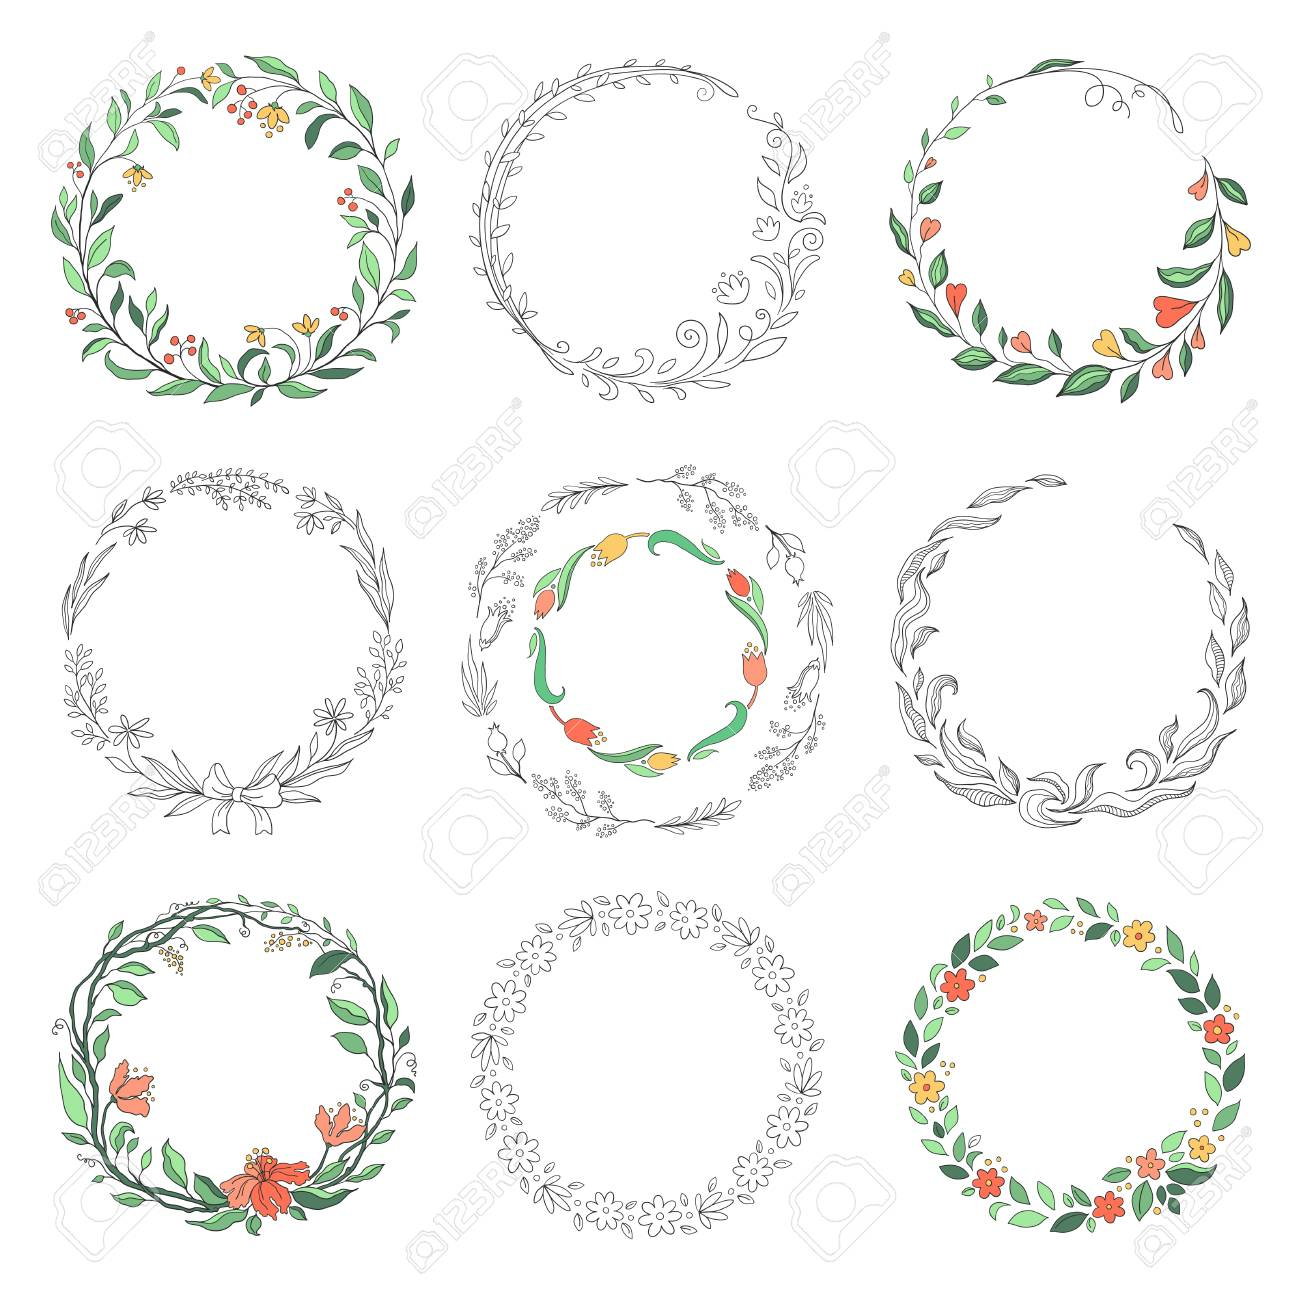 Floral Circle Doodle Frames Hand Drawn Linear Round Borders Royalty Free Cliparts Vectors And Stock Illustration Image 122318280